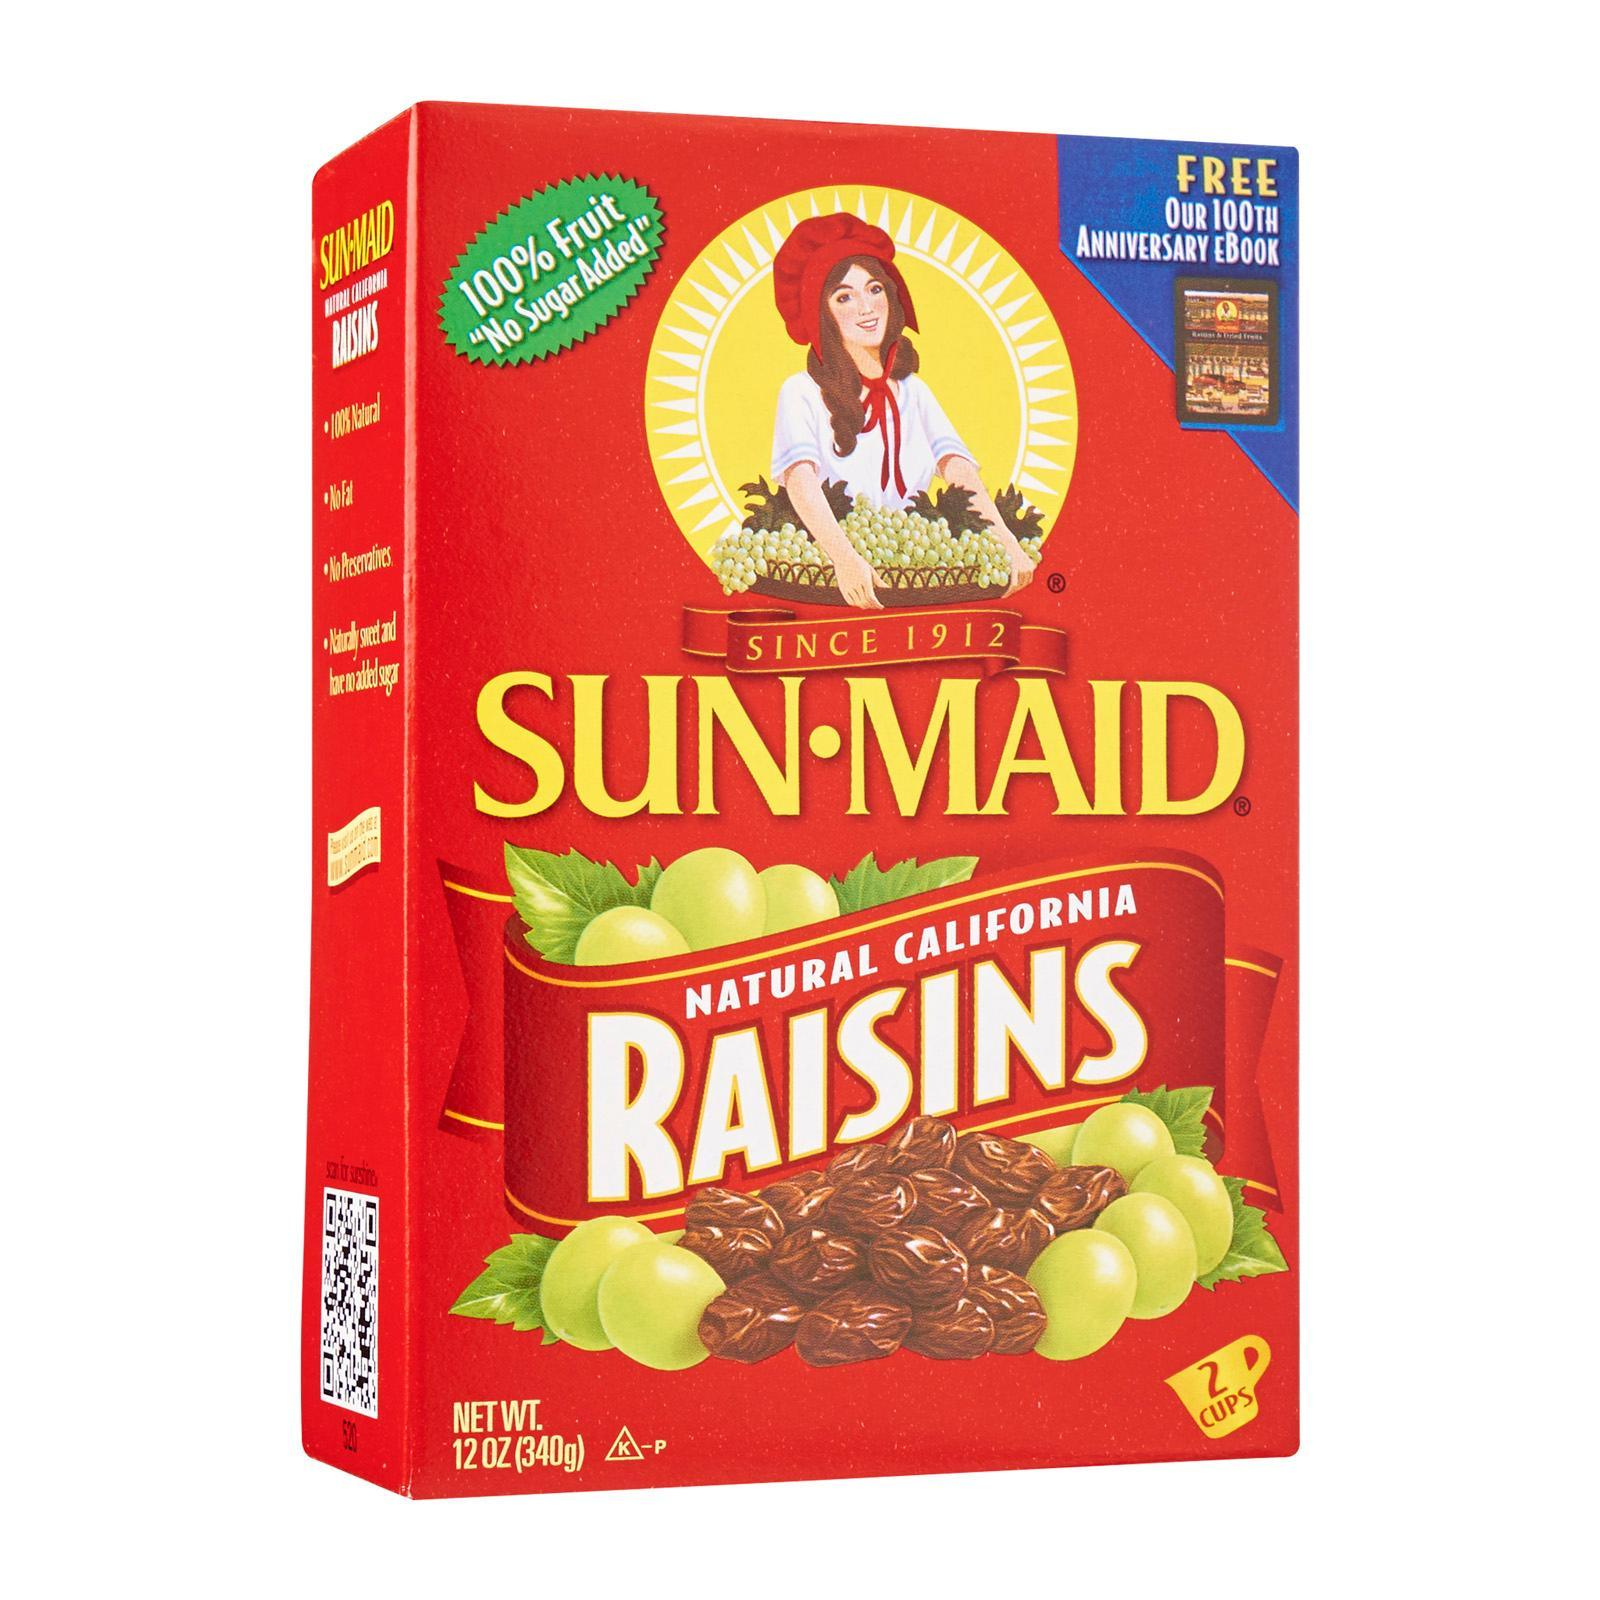 Sun-Maid Box Of Natural California Raisins